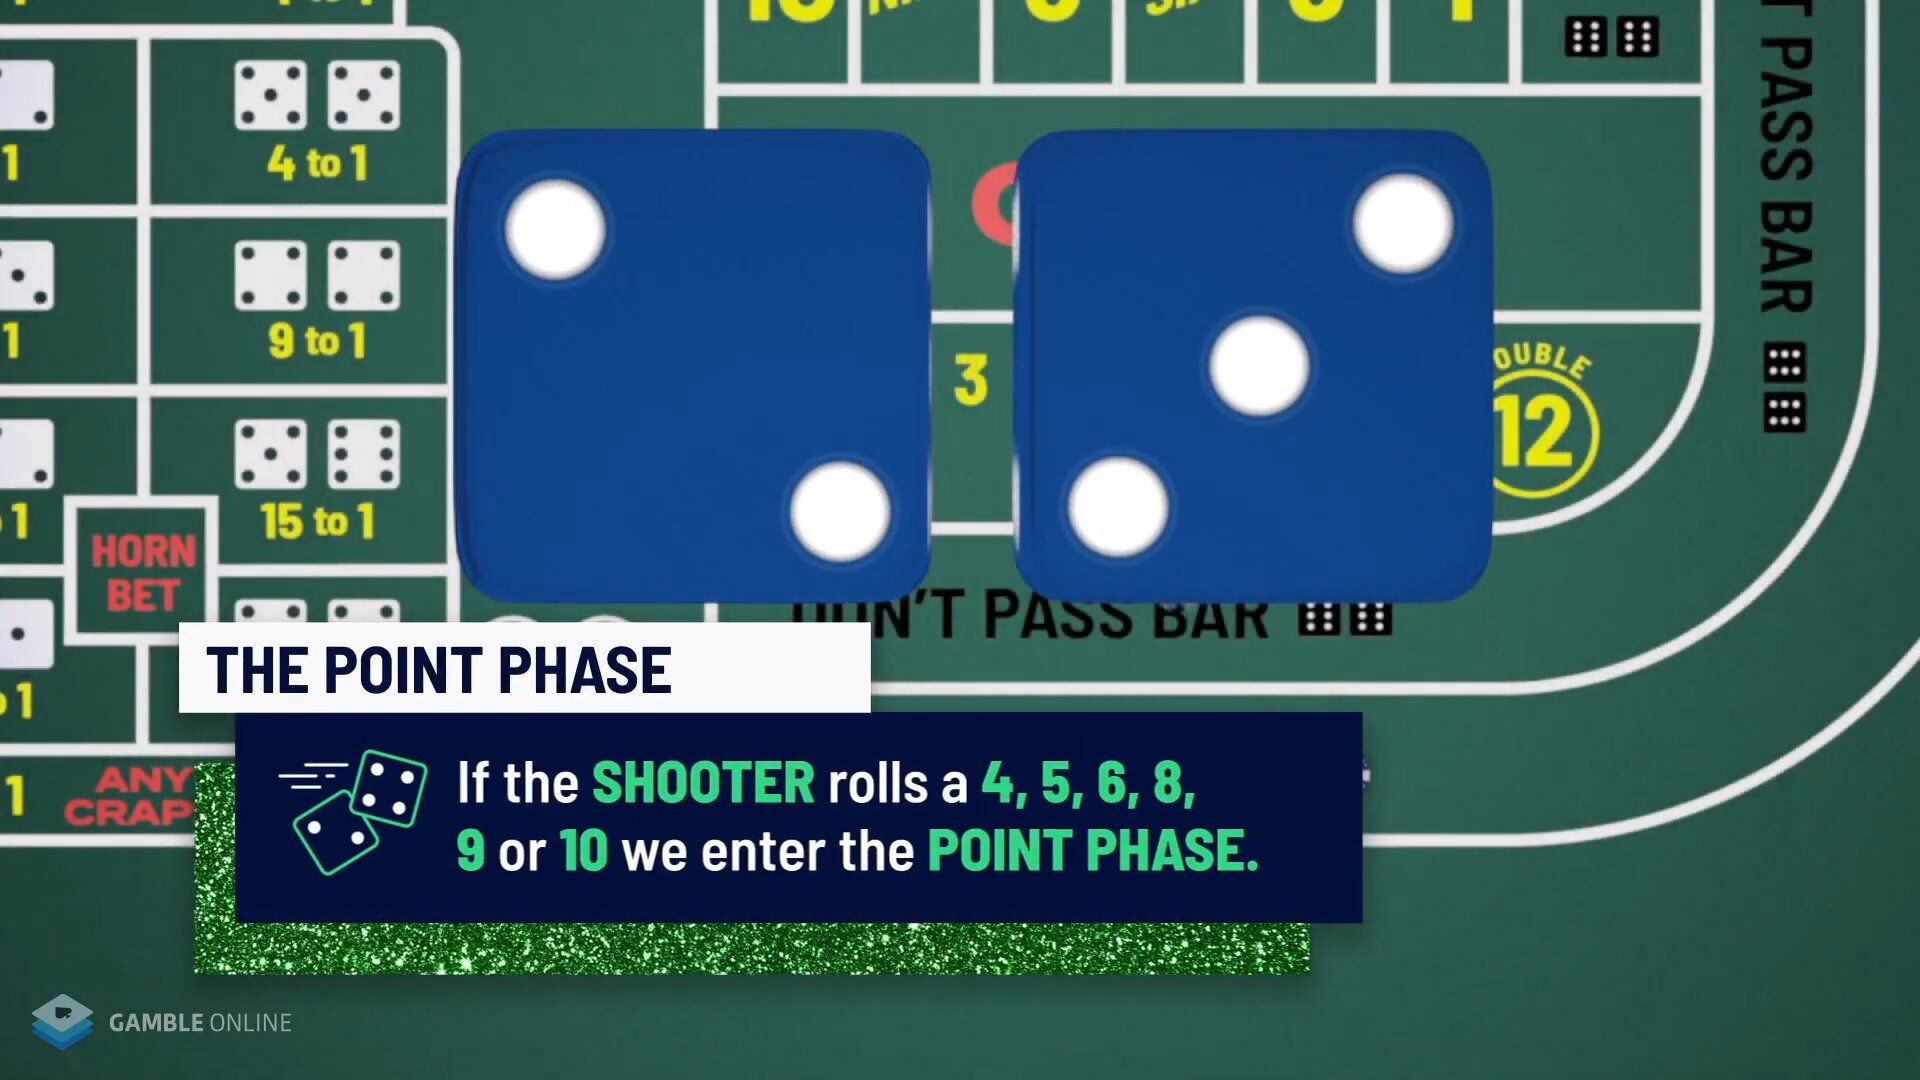 How to Play Craps Online _ Learn to Play Craps in Under 10 Minutes 2020 2-15 screenshot